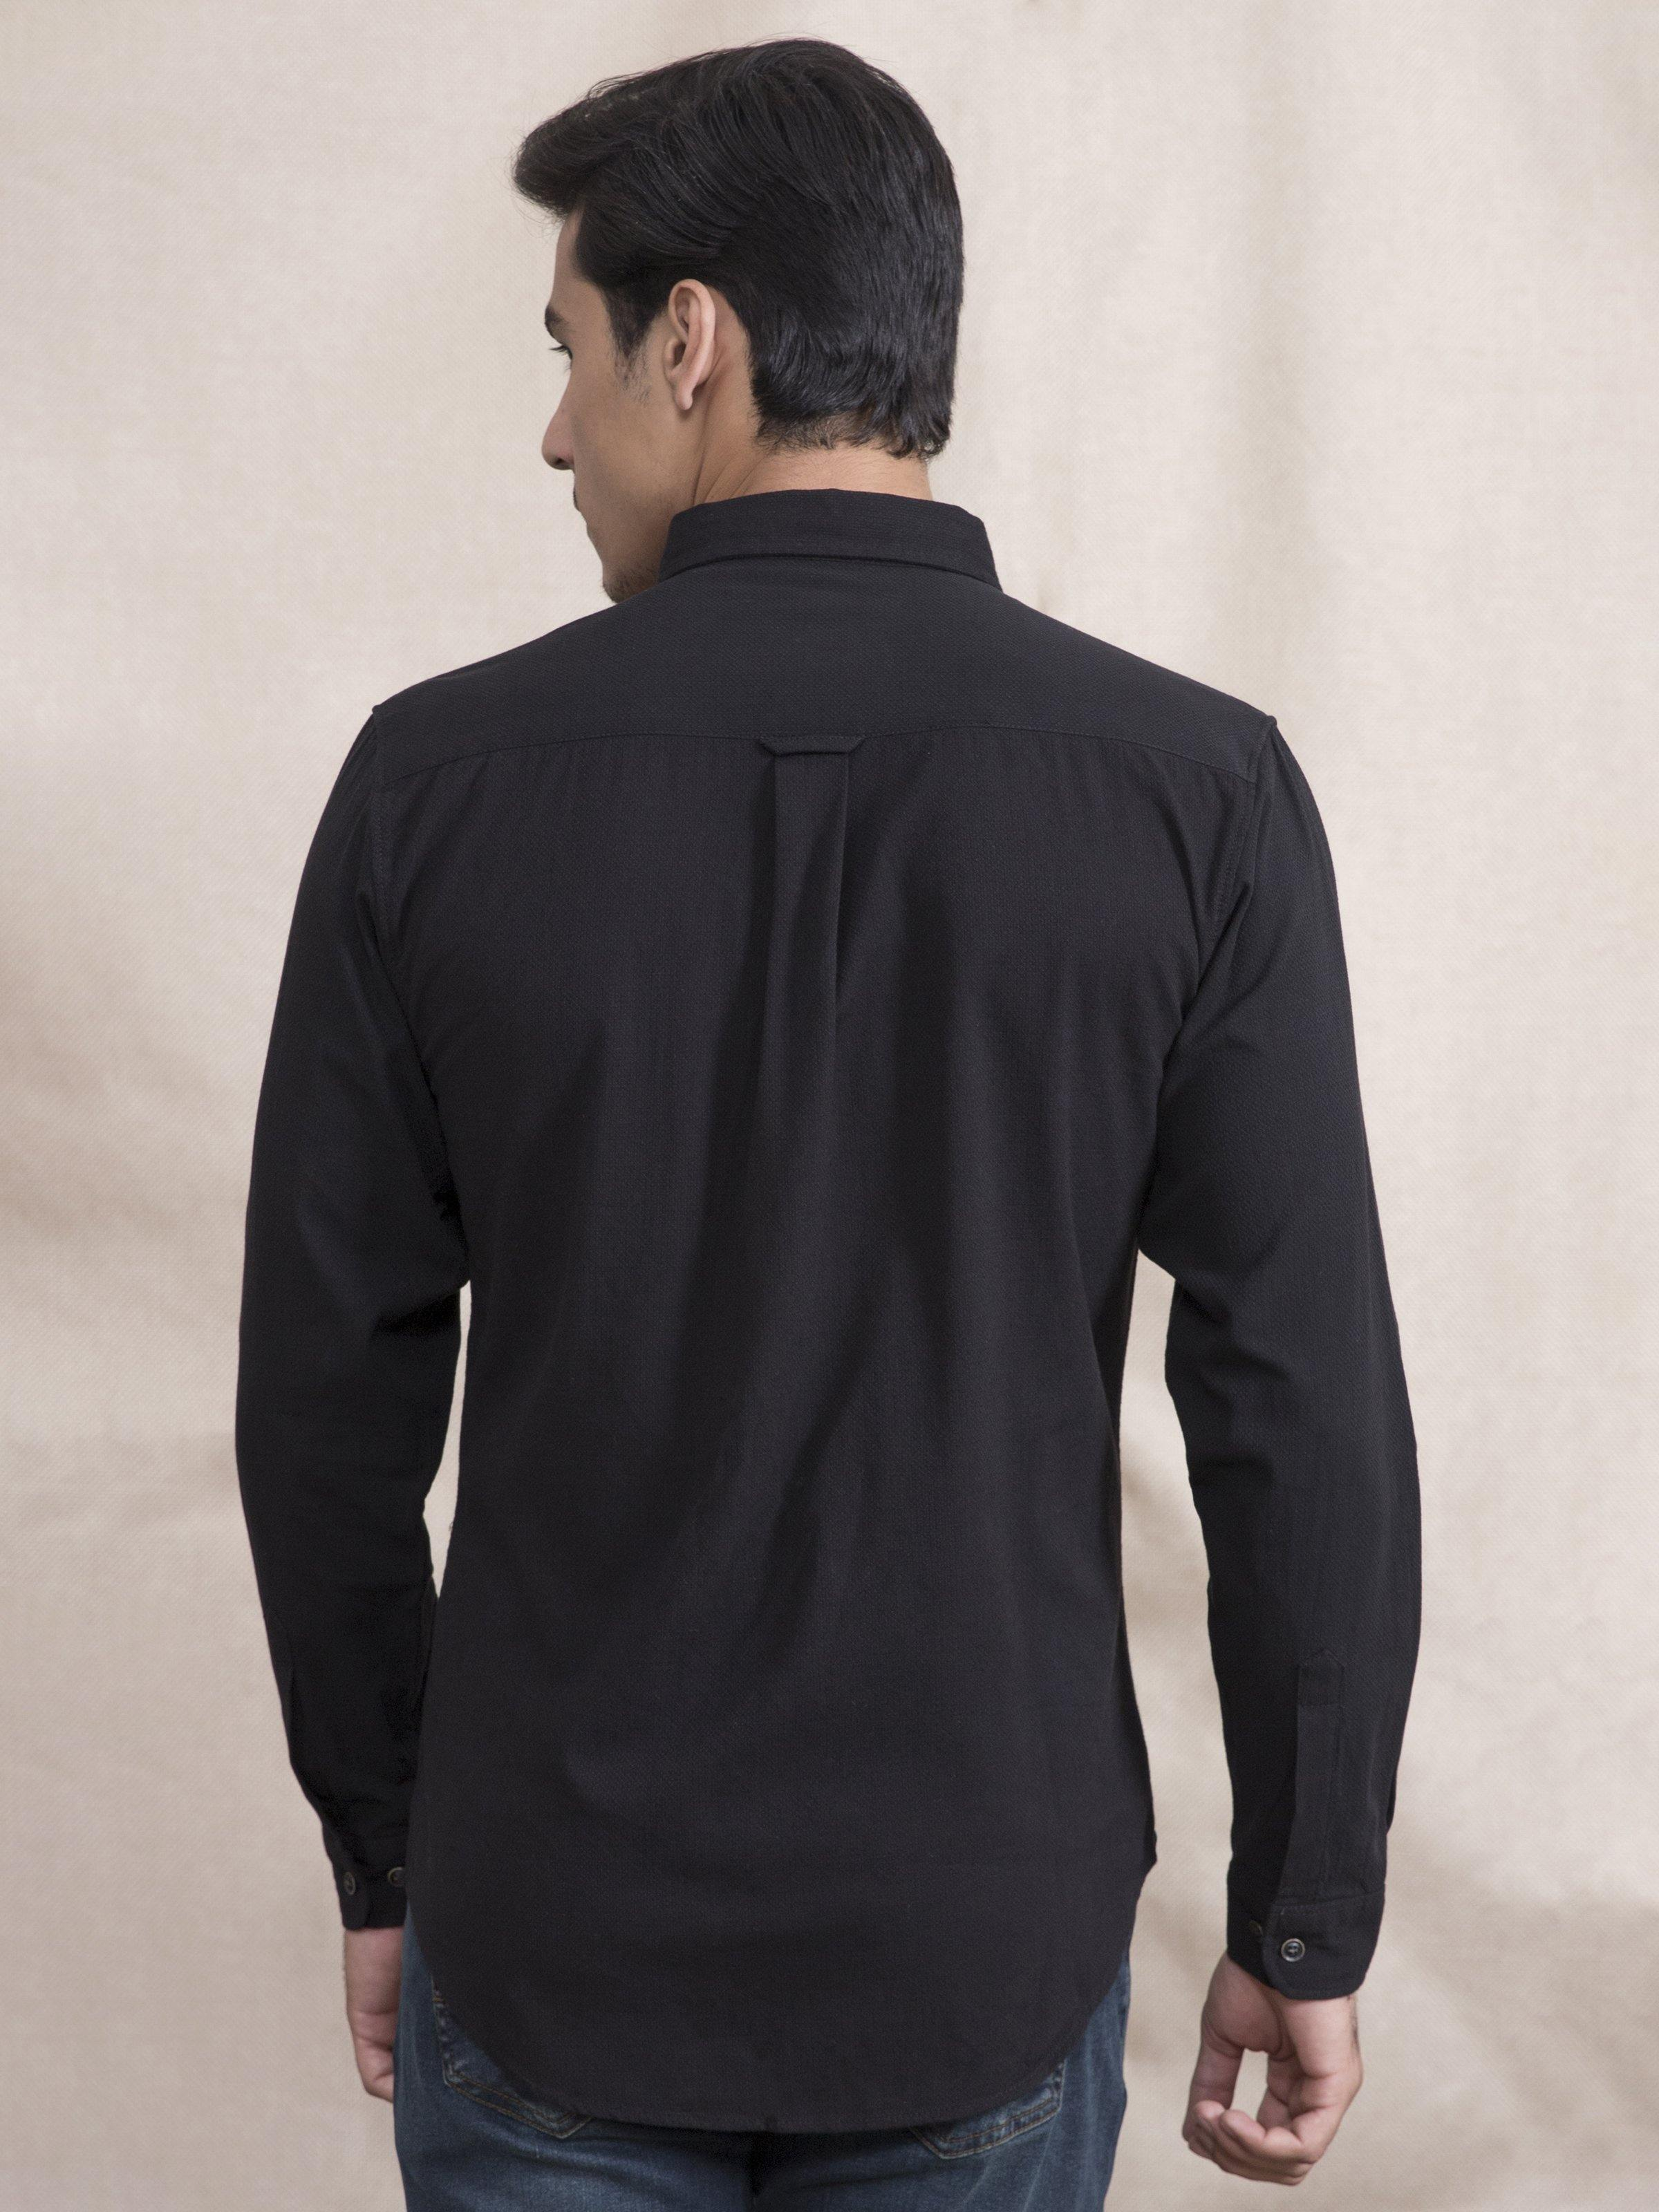 CASUAL SHIRT SLIM FIT FULL SLEEVE BLACK - Charcoal Clothing